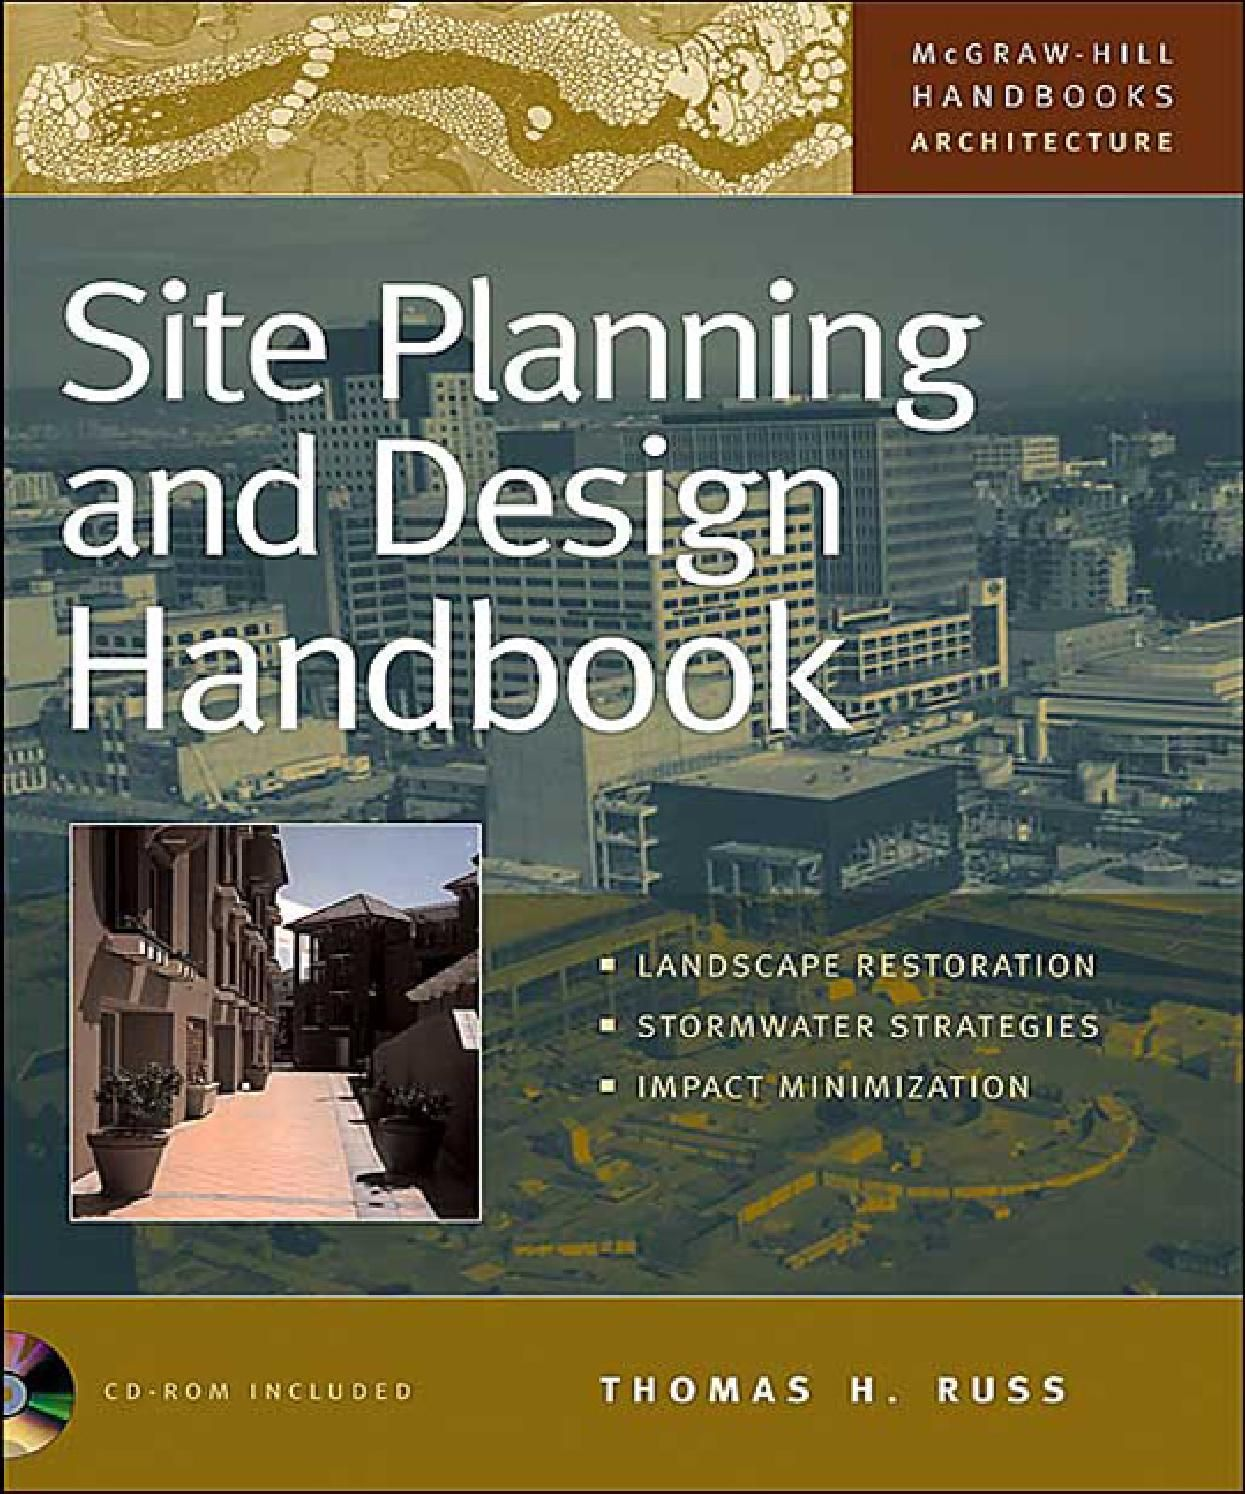 Site planning and design handbook by Eng/Jumaiah - issuu